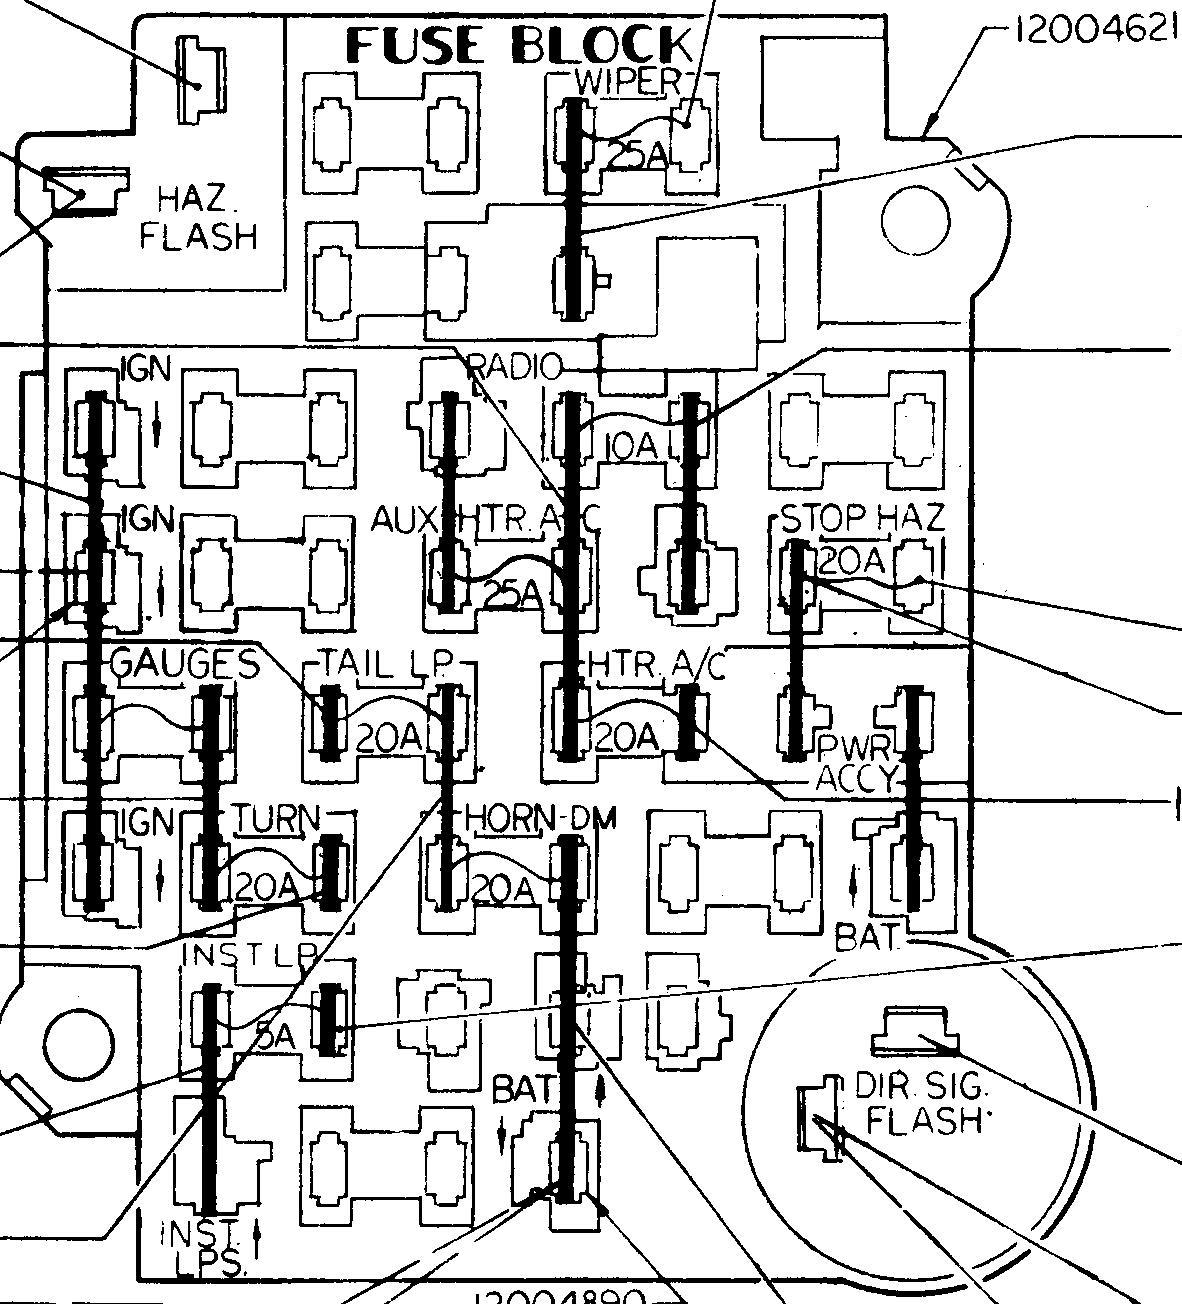 hight resolution of gm ato style fuse block 1996 chevy blazer fuse box diagram gm fuse box diagram